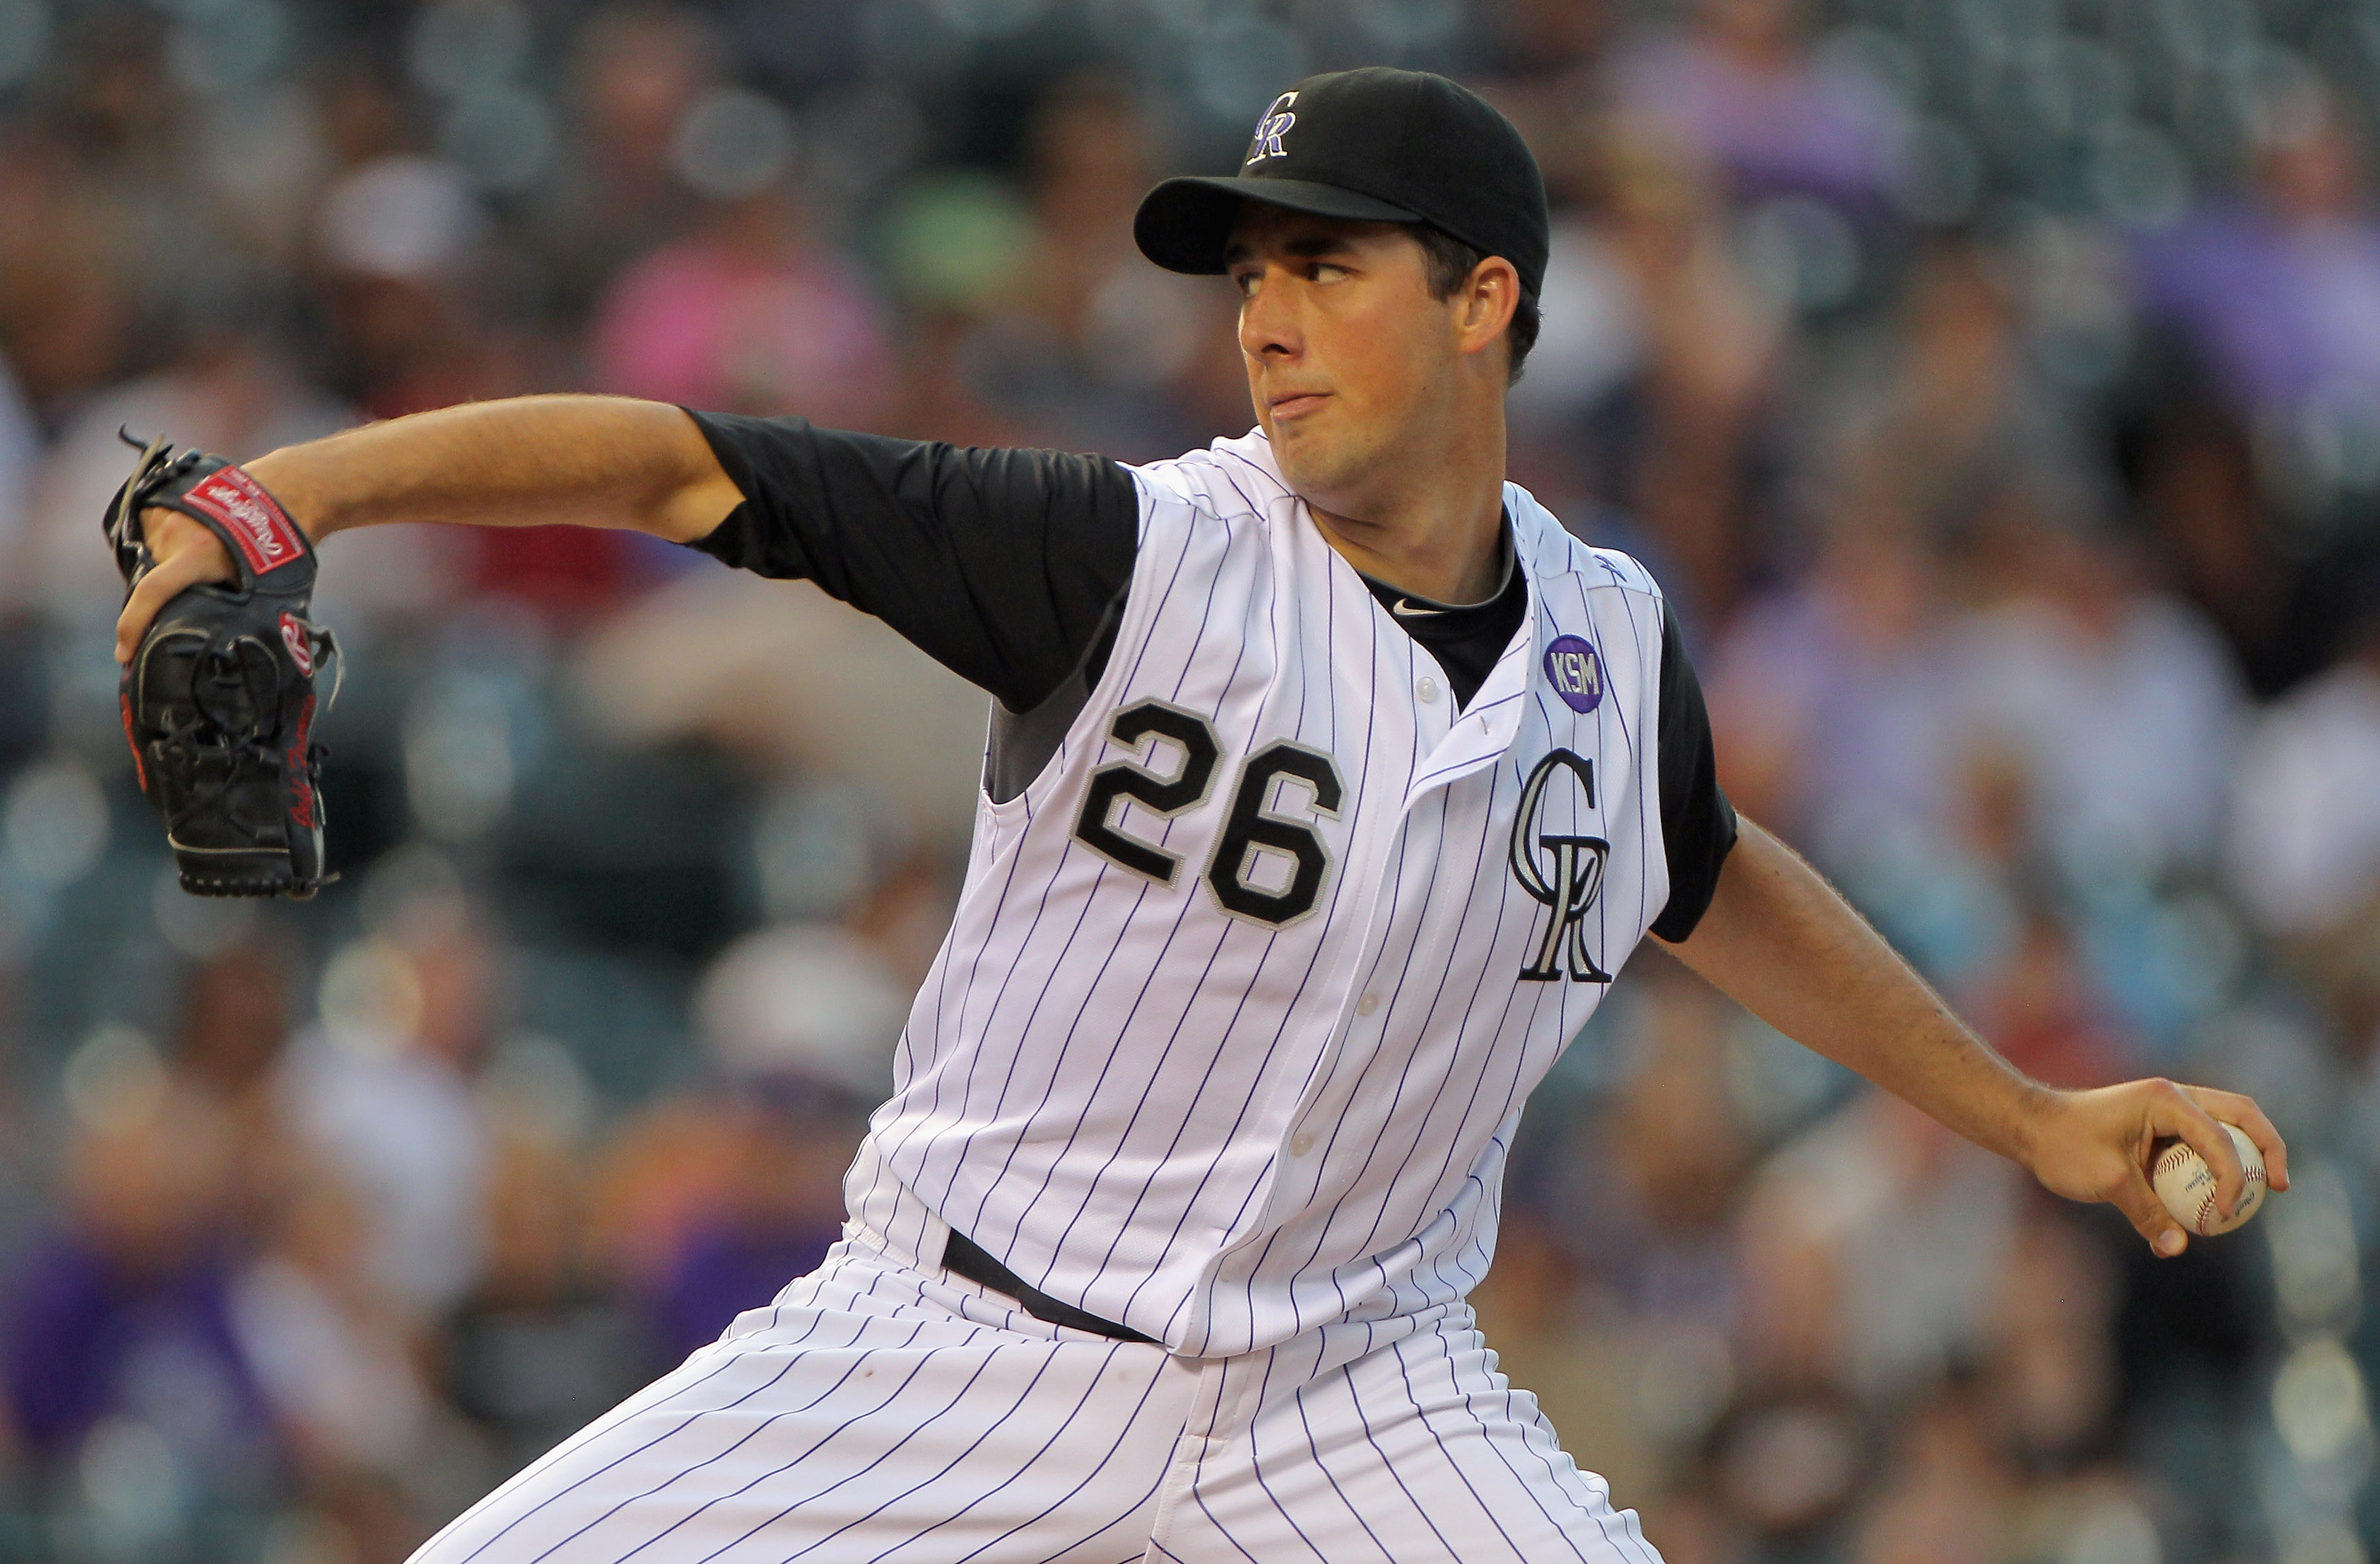 DENVER - SEPTEMBER 13:  Starting pitcher Jeff Francis #26 of the Colorado Rockies delivers against the San Diego Padres at Coors Field on September 13, 2010 in Denver, Colorado.  (Photo by Doug Pensinger/Getty Images)